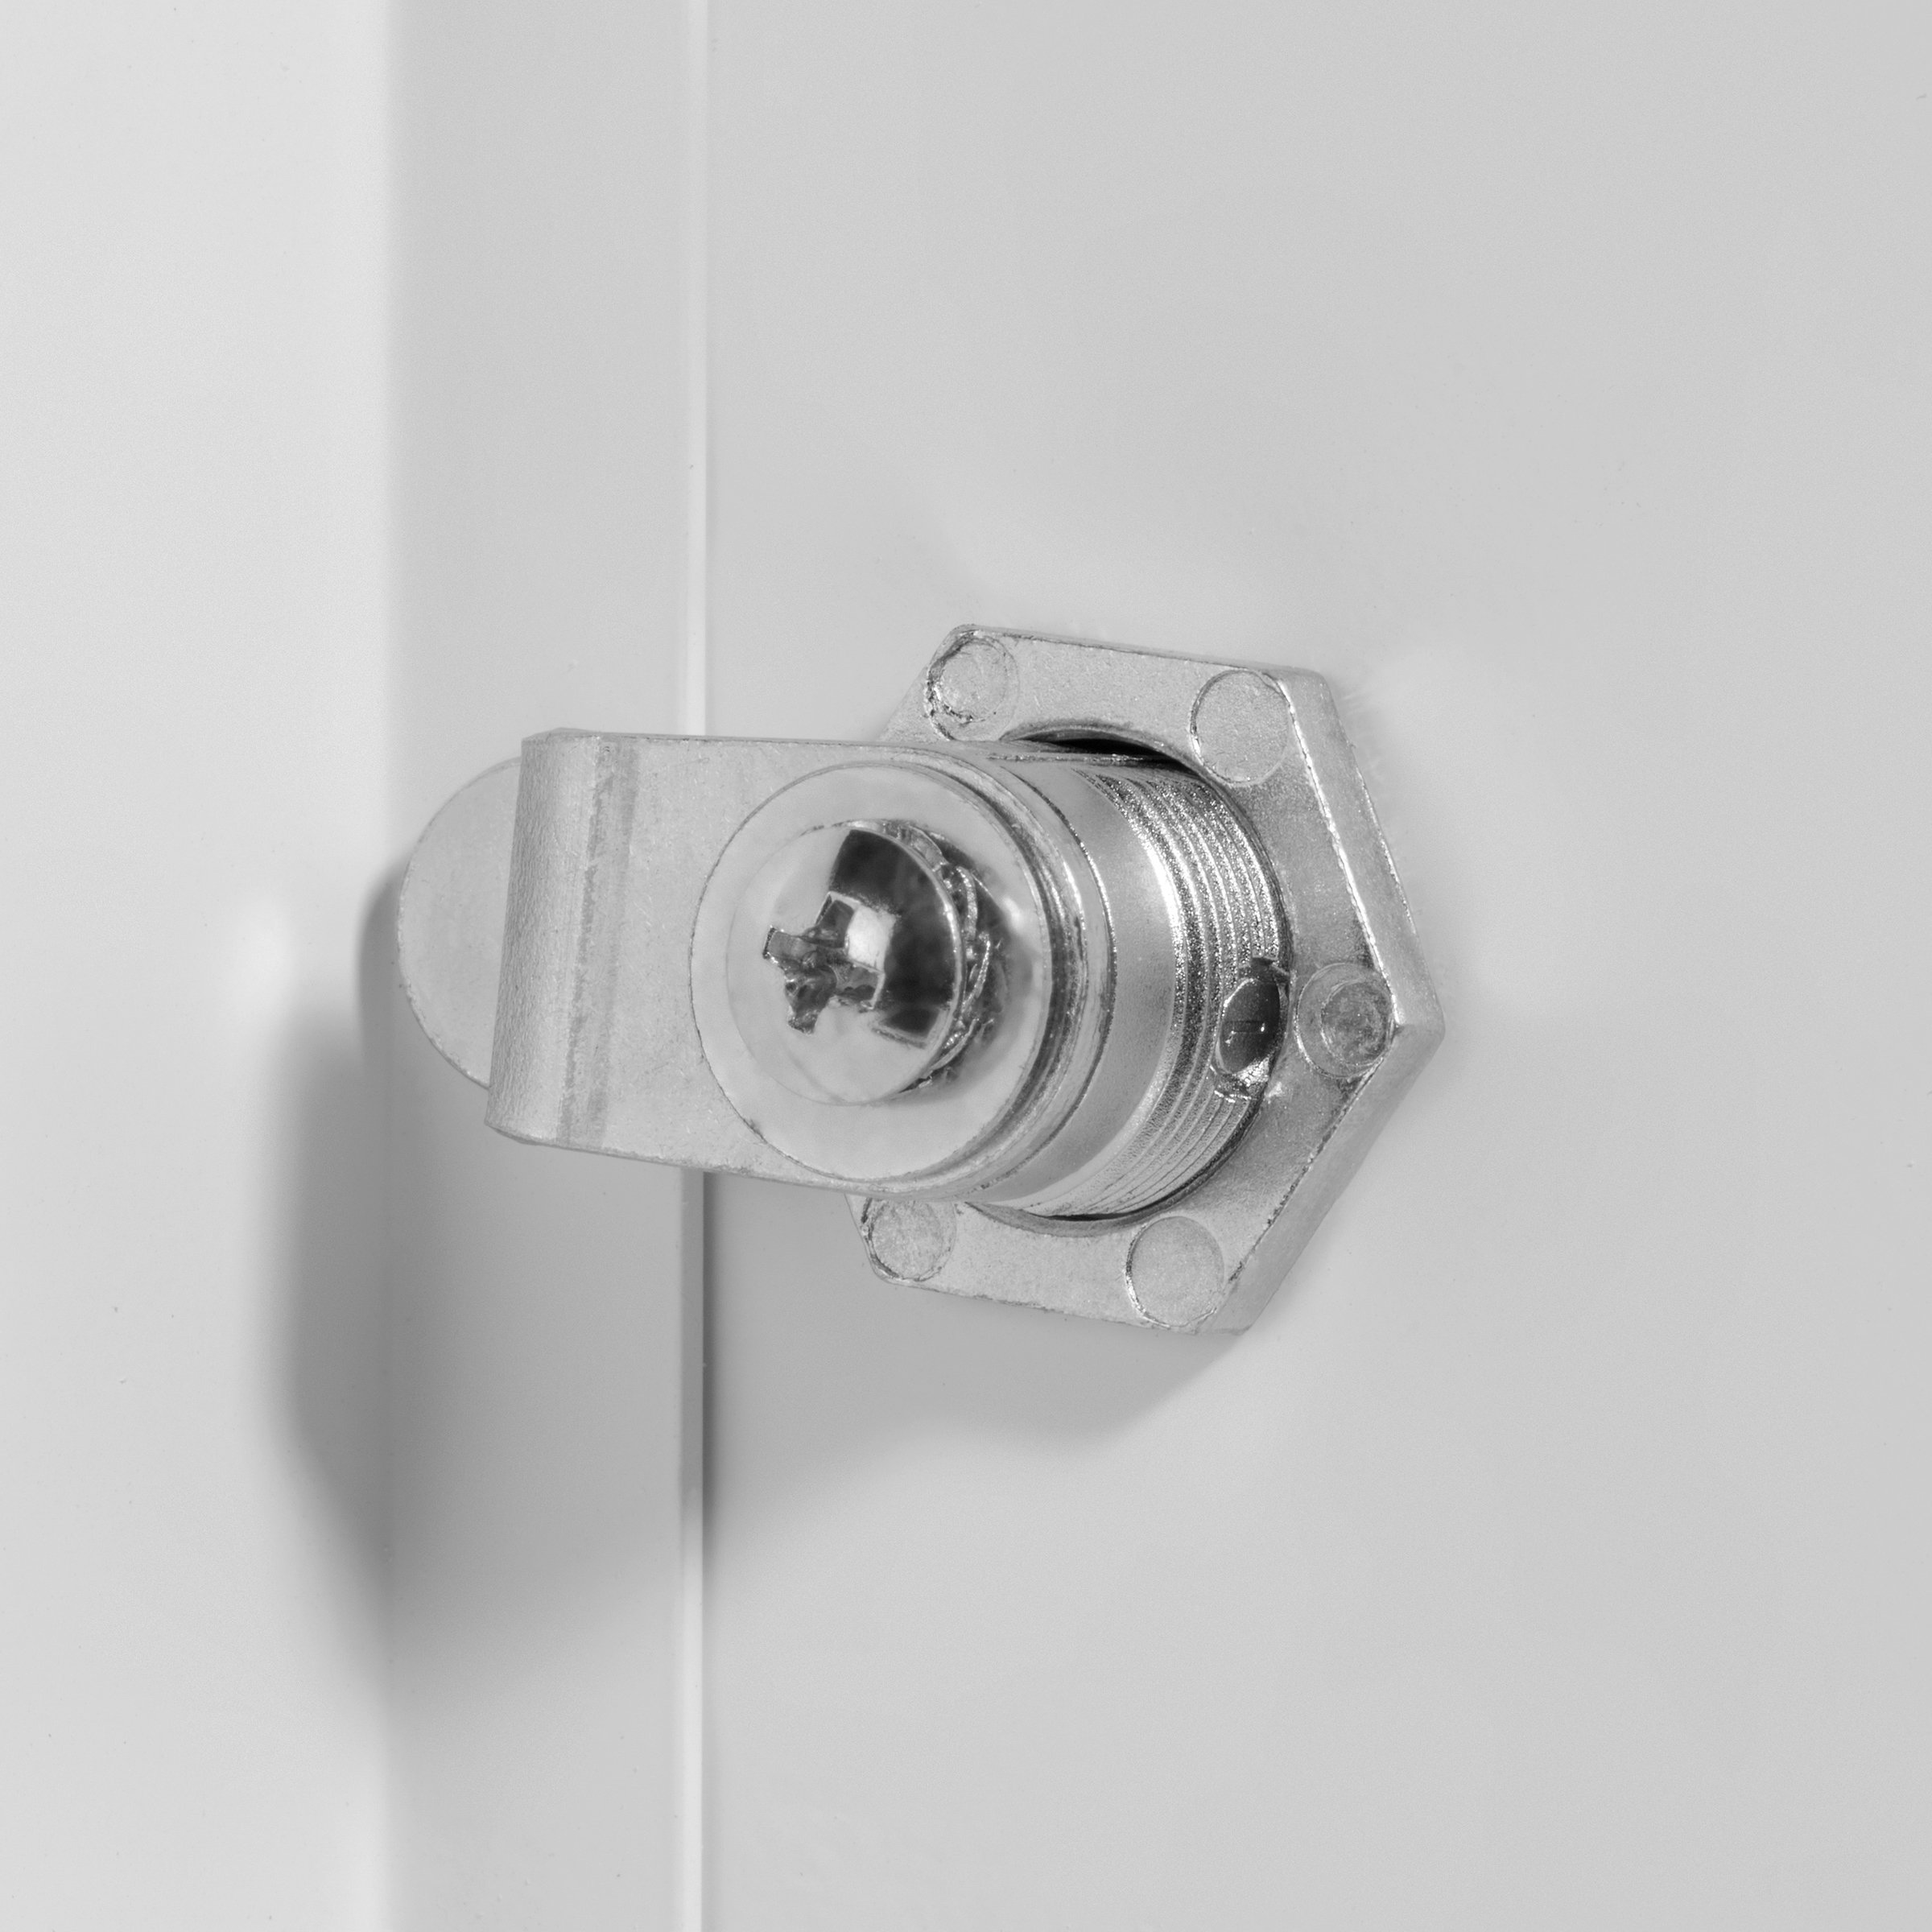 Premier 2002 Series Steel Access Door, 18 x 18 Flush Universal Mount, White (Keyed Cylinder Latch) by Premier Access Doors (Image #2)